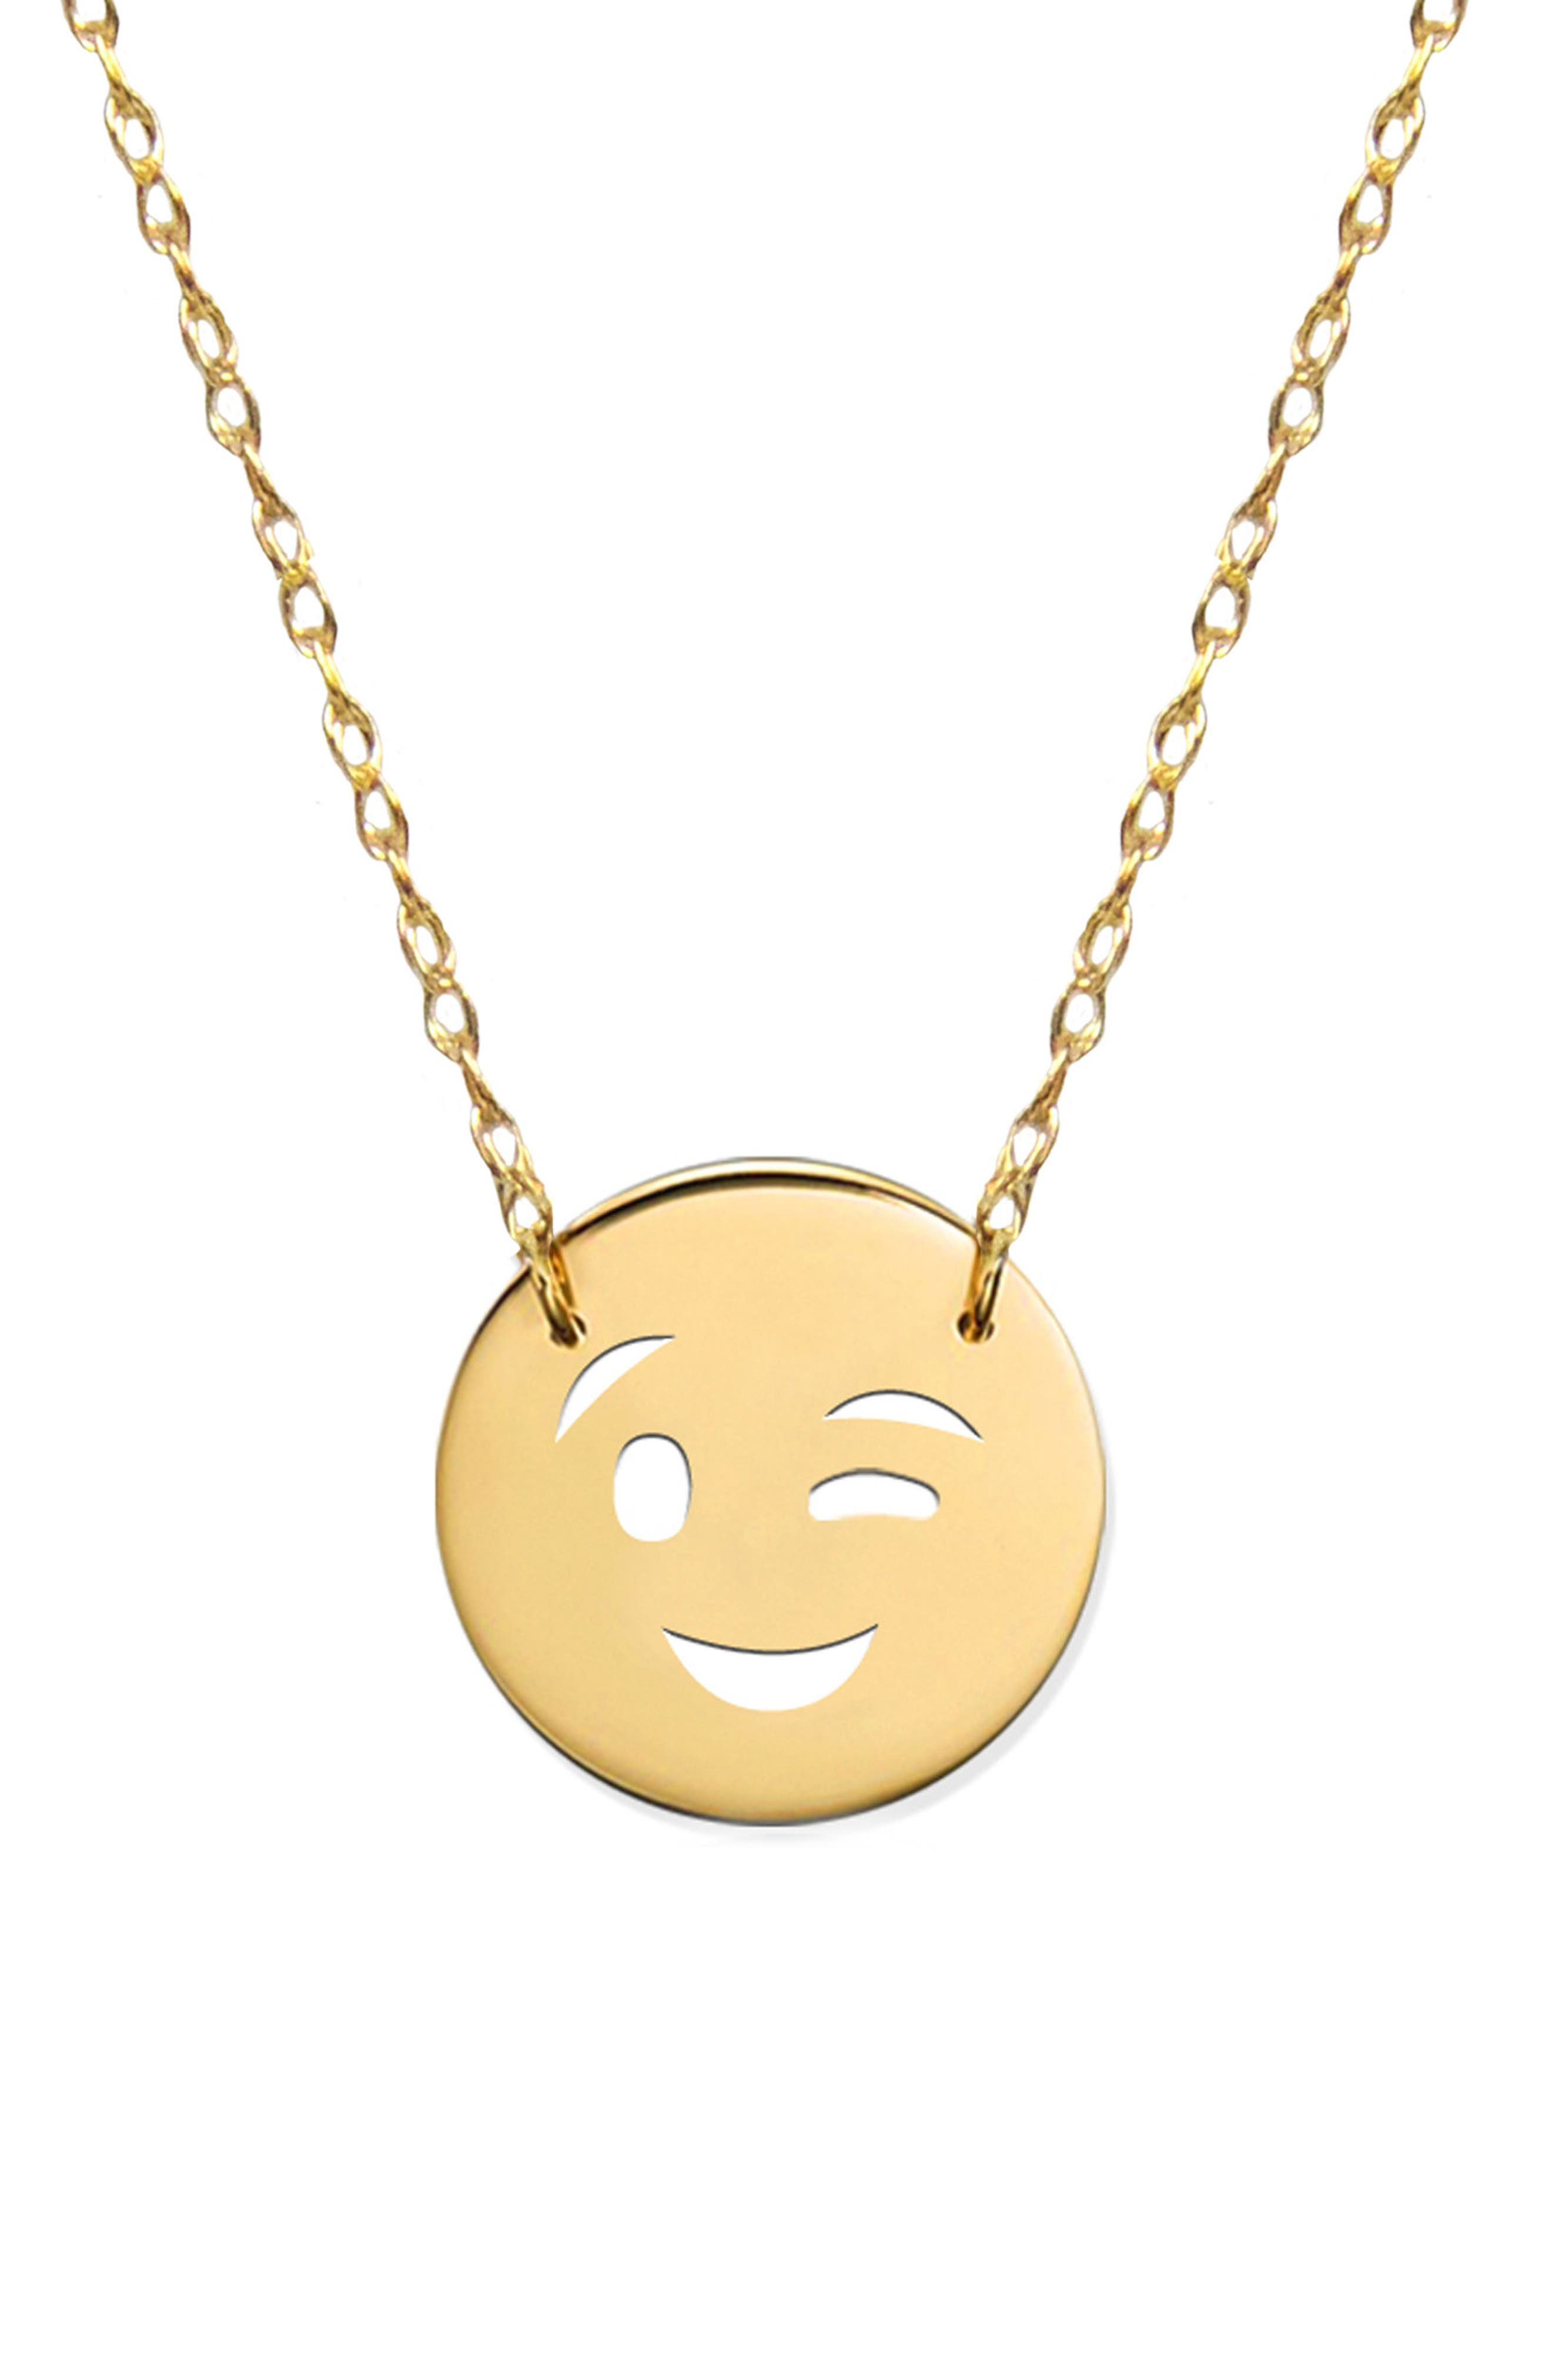 Wink Emoji Pendant Necklace,                         Main,                         color, Yellow Gold